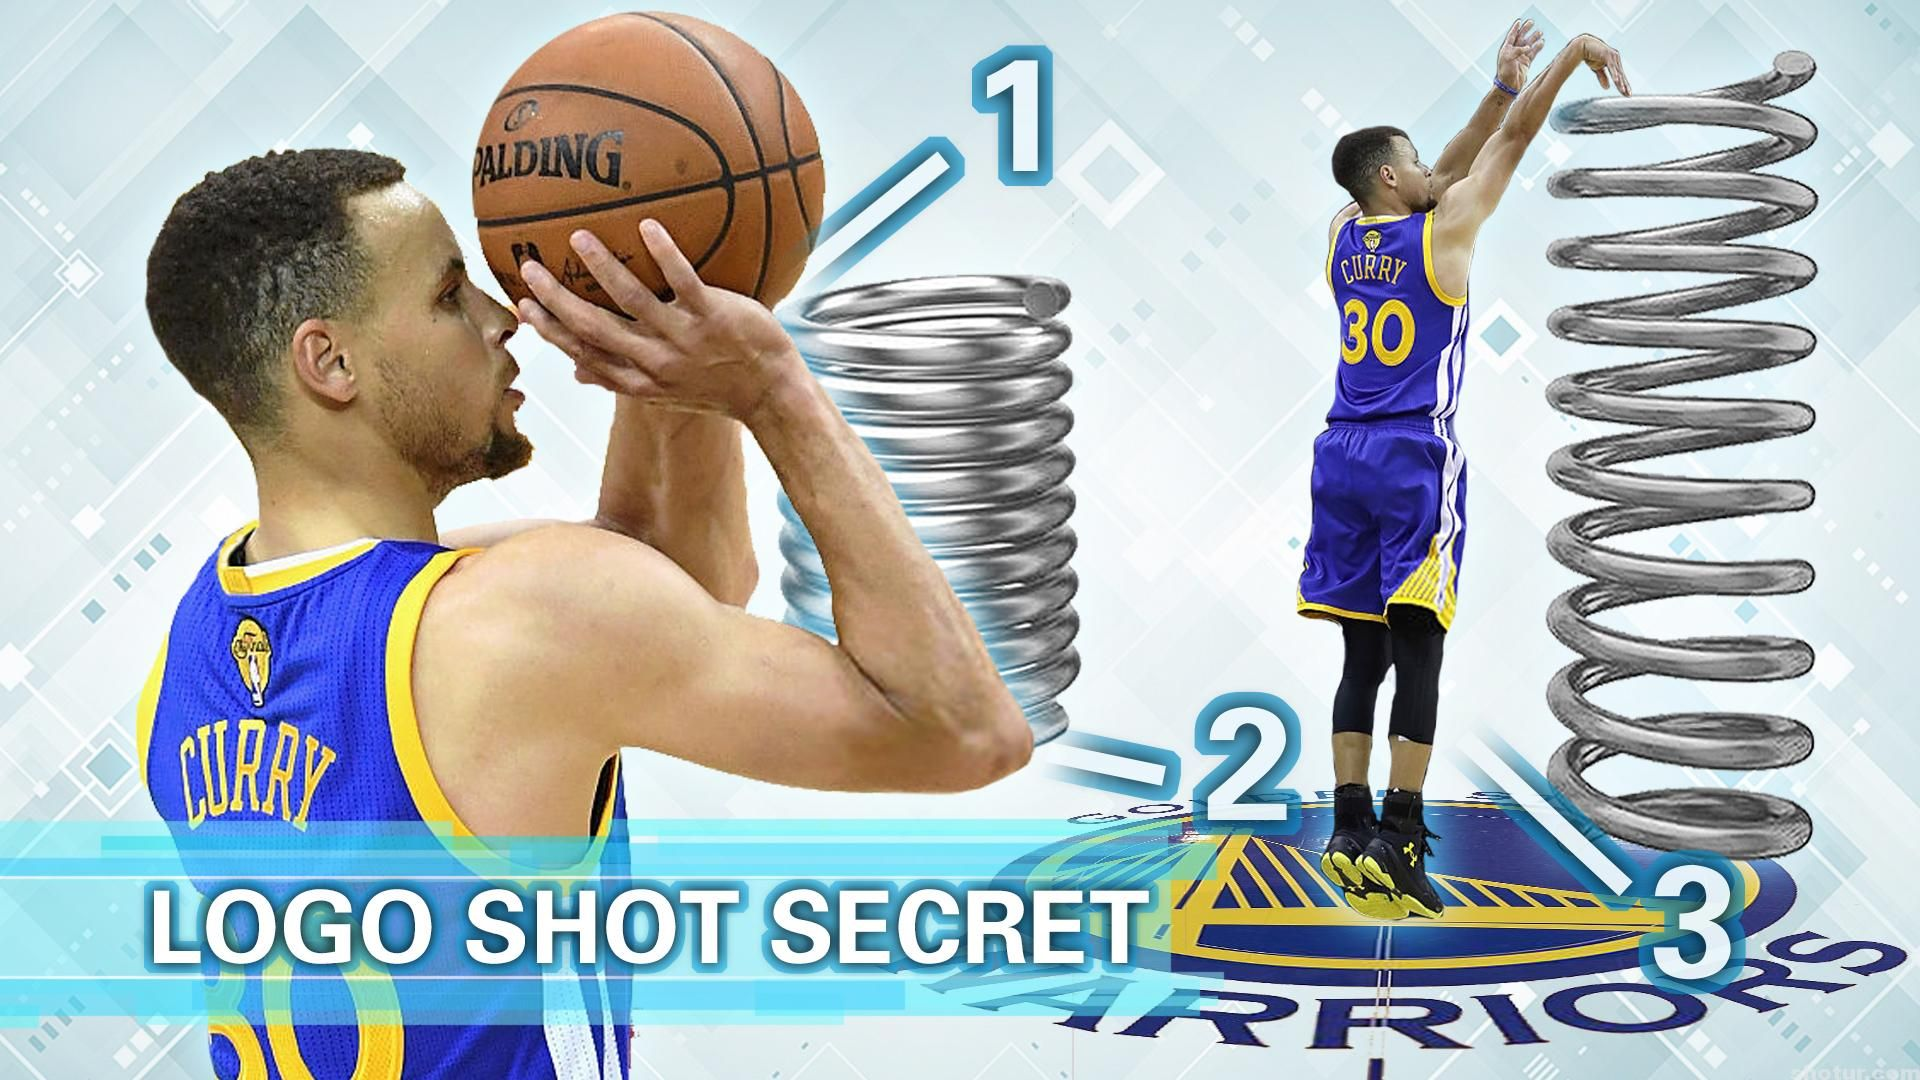 This Post I Will Analyze Stephen Curry S Logo Shot Skills Secret With Spring Force Stephen Cu Stephen Curry Stephen Curry Shooting Form Stephen Curry Shooting